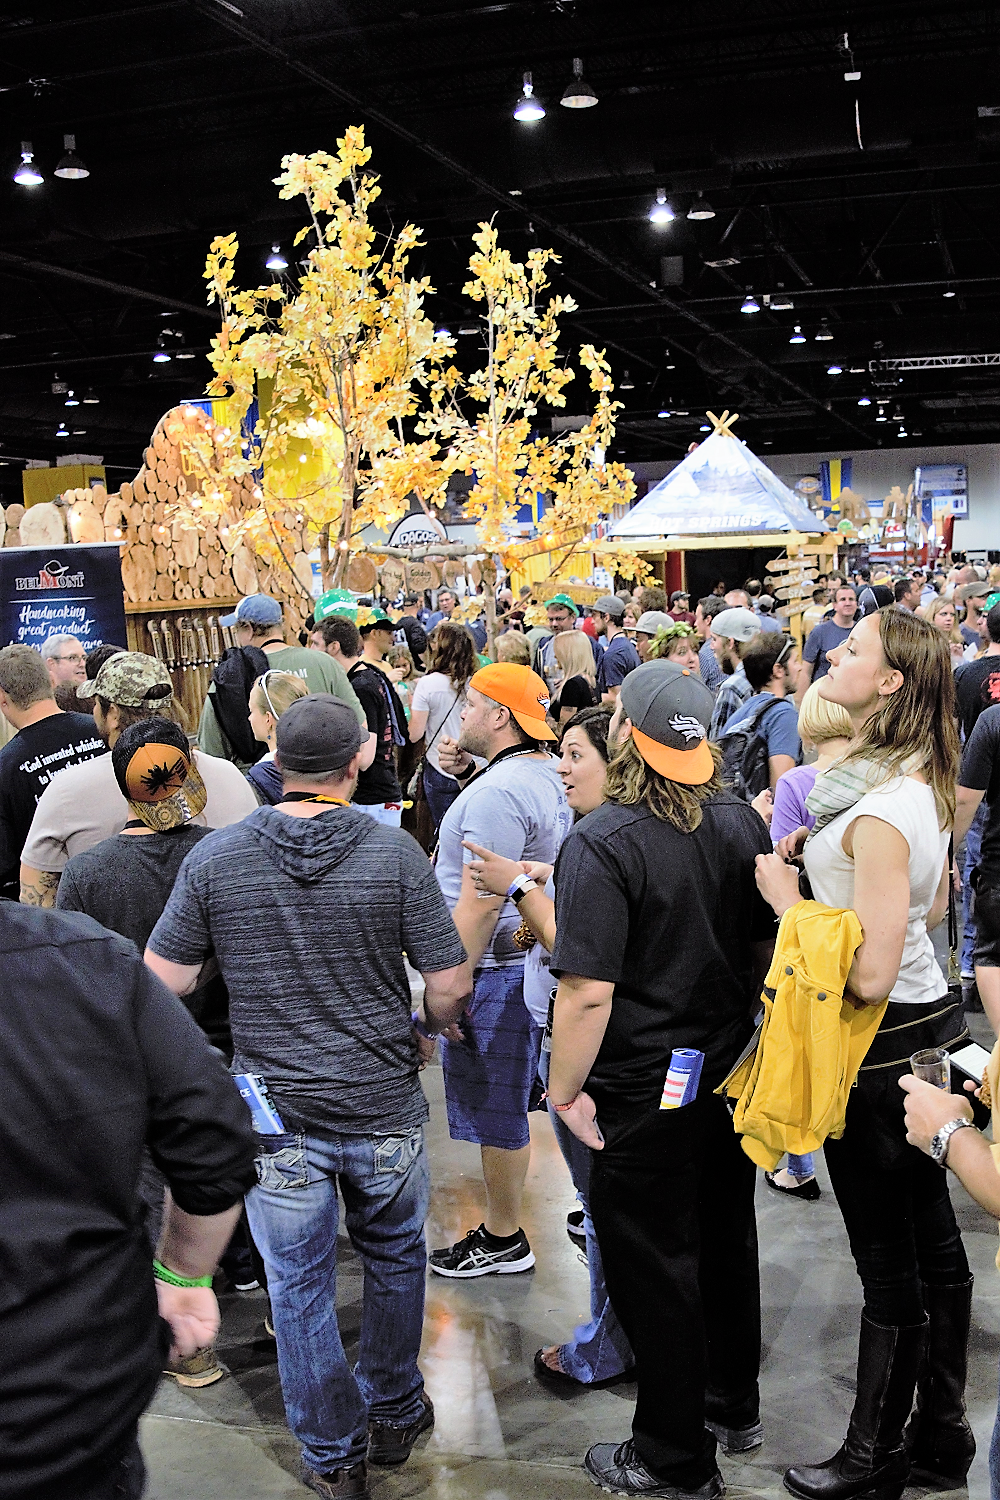 Guide to the Great American Beer Festival, with a map of the 2017 GABF award-winning beers - now get out there and drink local!